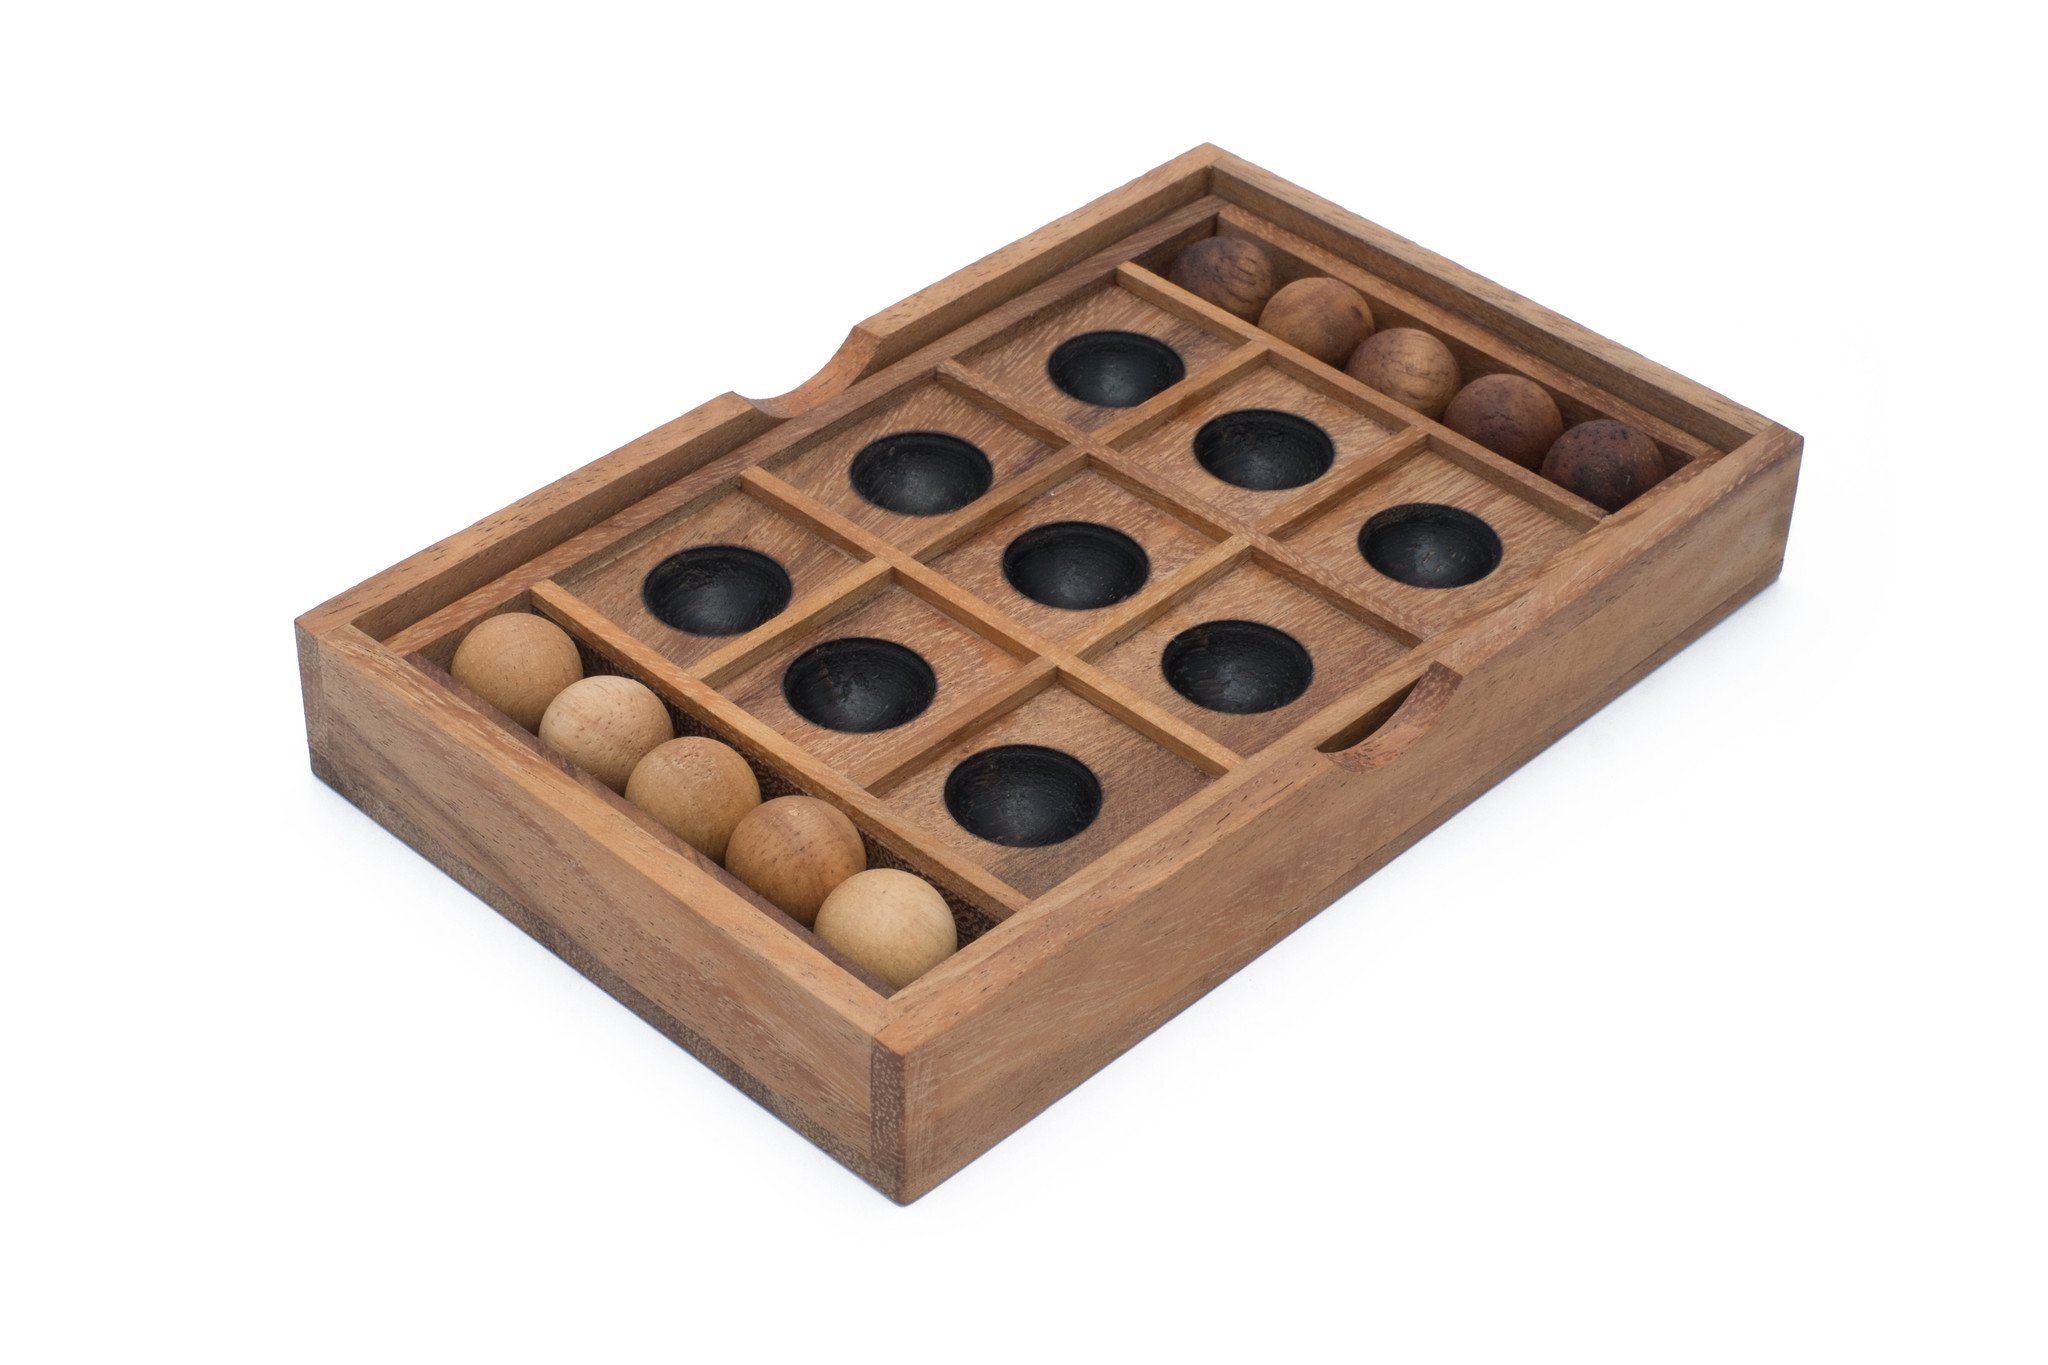 Wooden Tic Tac Toe Set | Noughts And Crosses Wooden Game Board